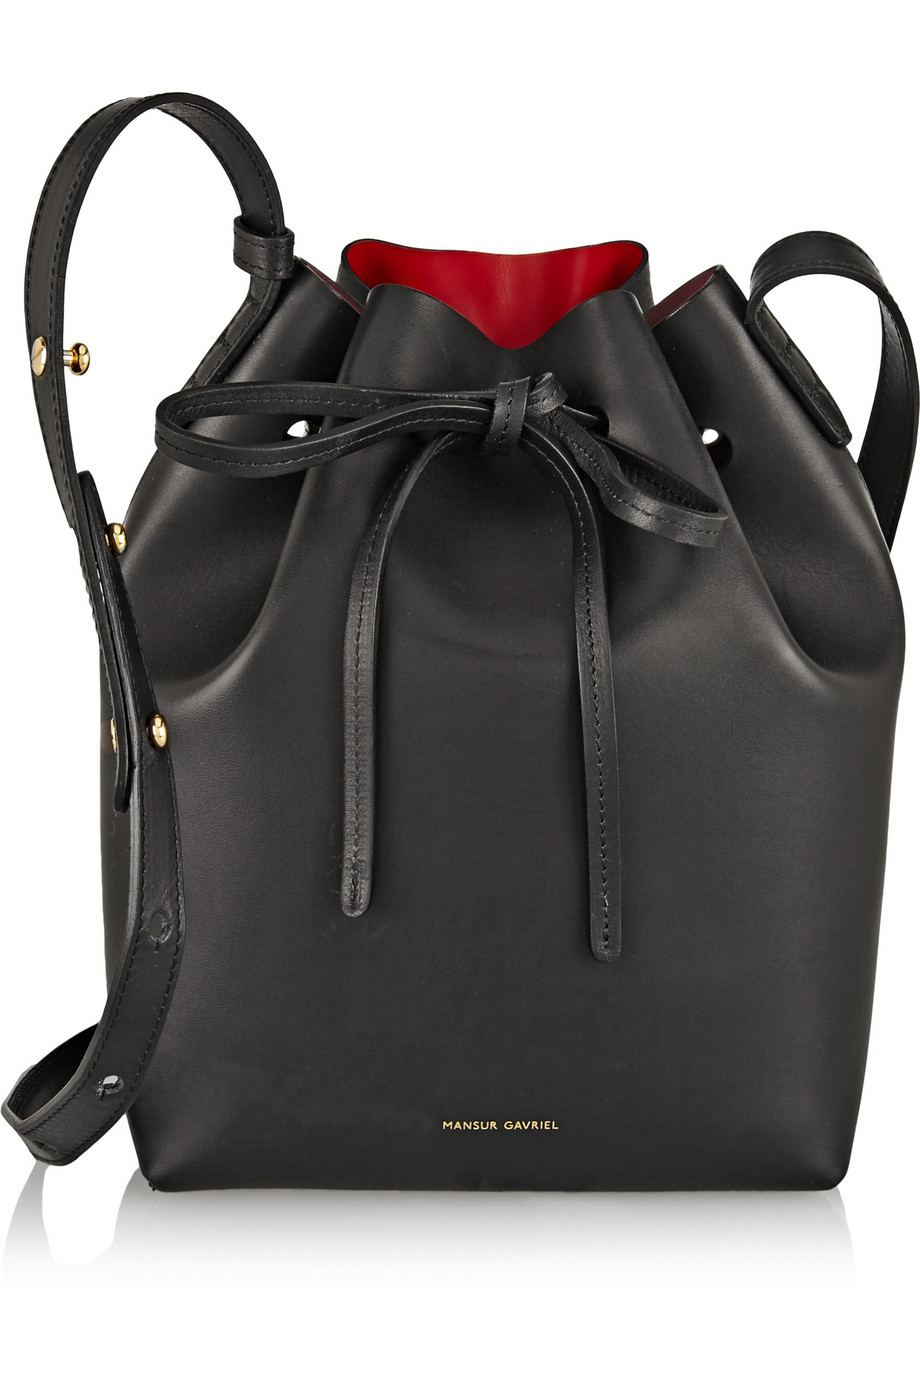 mansur gavriel mini leather bucket bag in black lyst. Black Bedroom Furniture Sets. Home Design Ideas